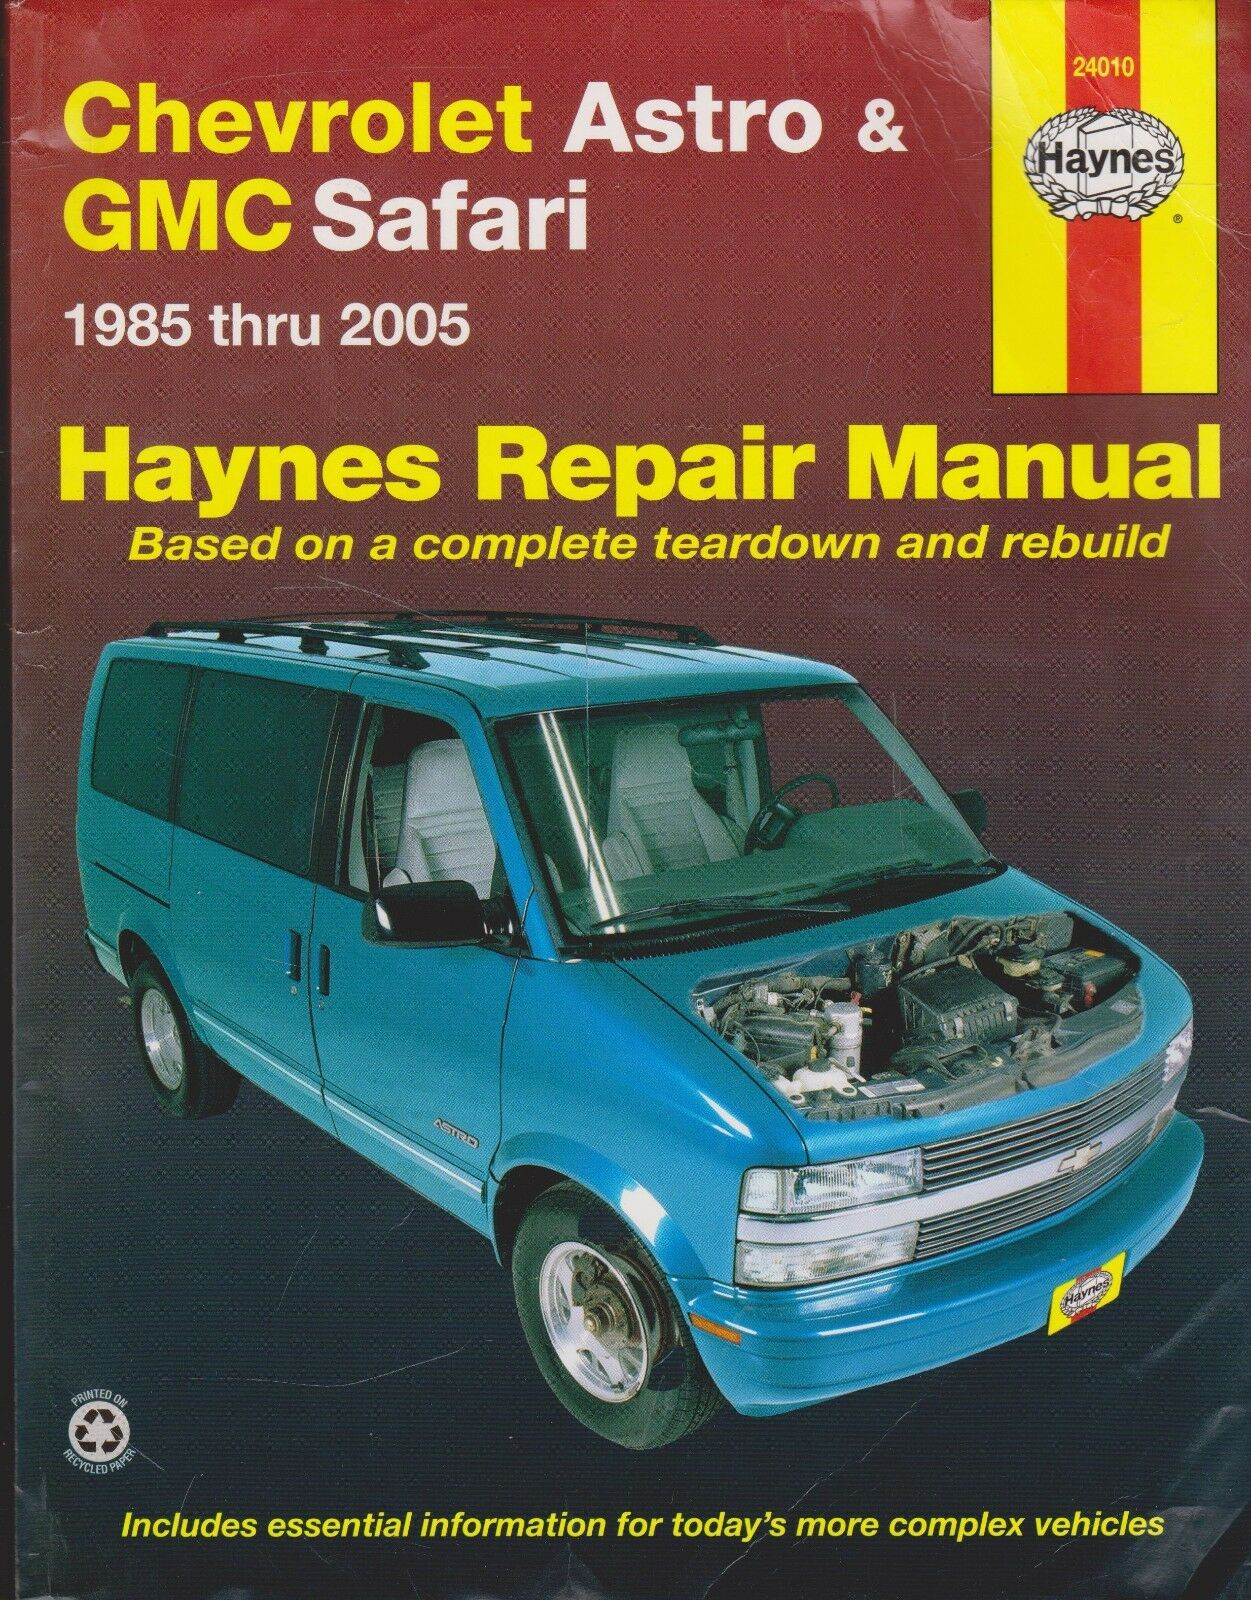 Haynes Repair Manual: Chevrolet Astro and GMC Safari - 1985 Thru 2005 by  Max Haynes, John H. Haynes and Ken Freund (2007, Paperback) | eBay